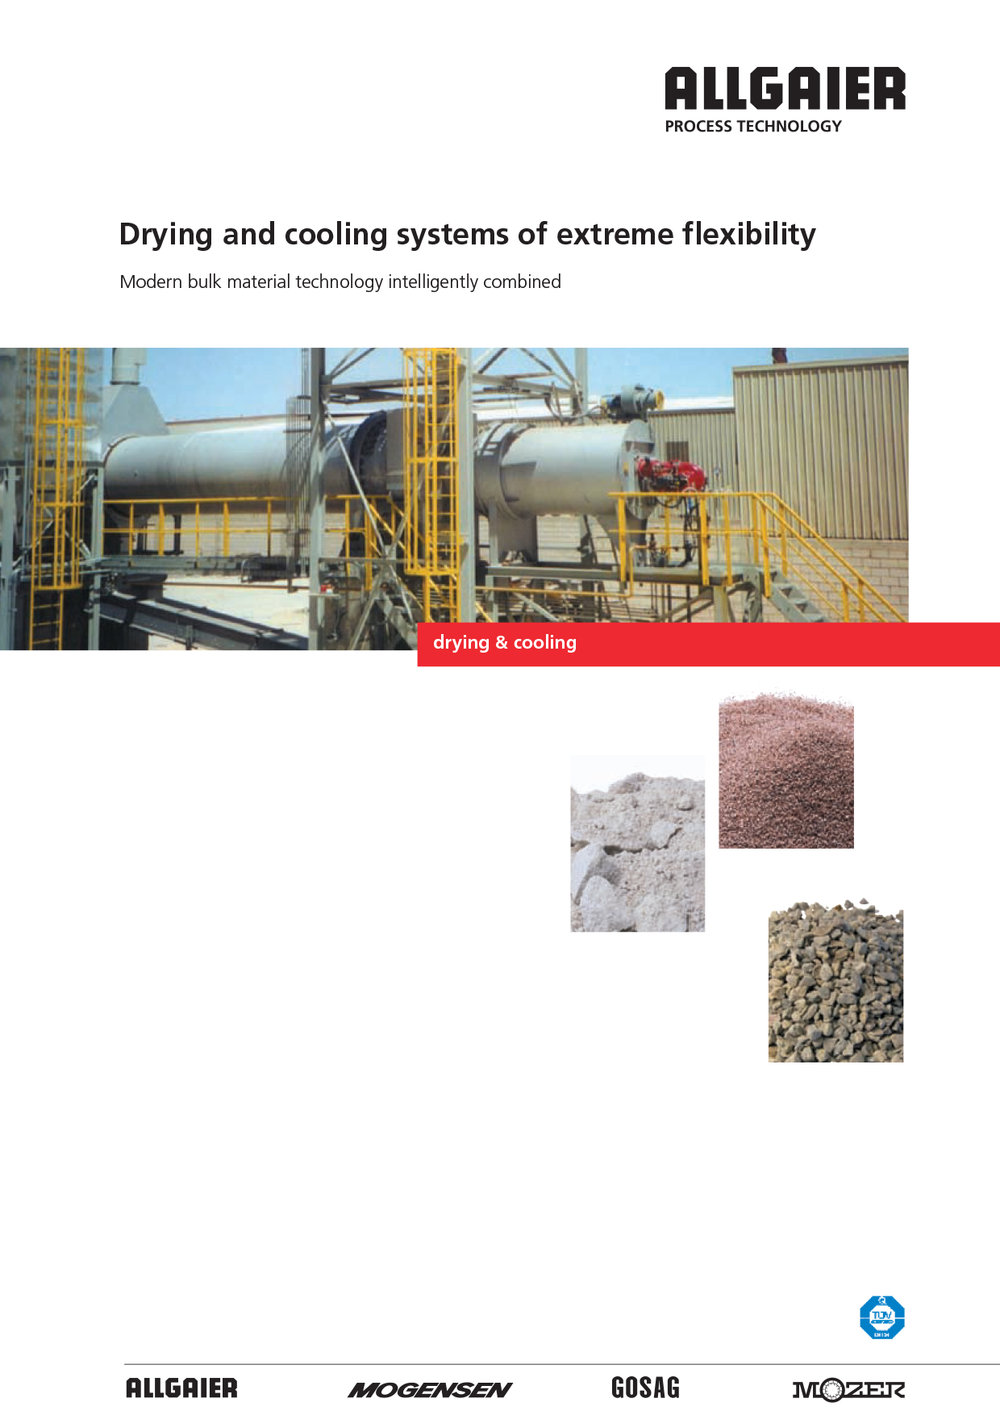 Drying and cooling systems of extreme flexibility